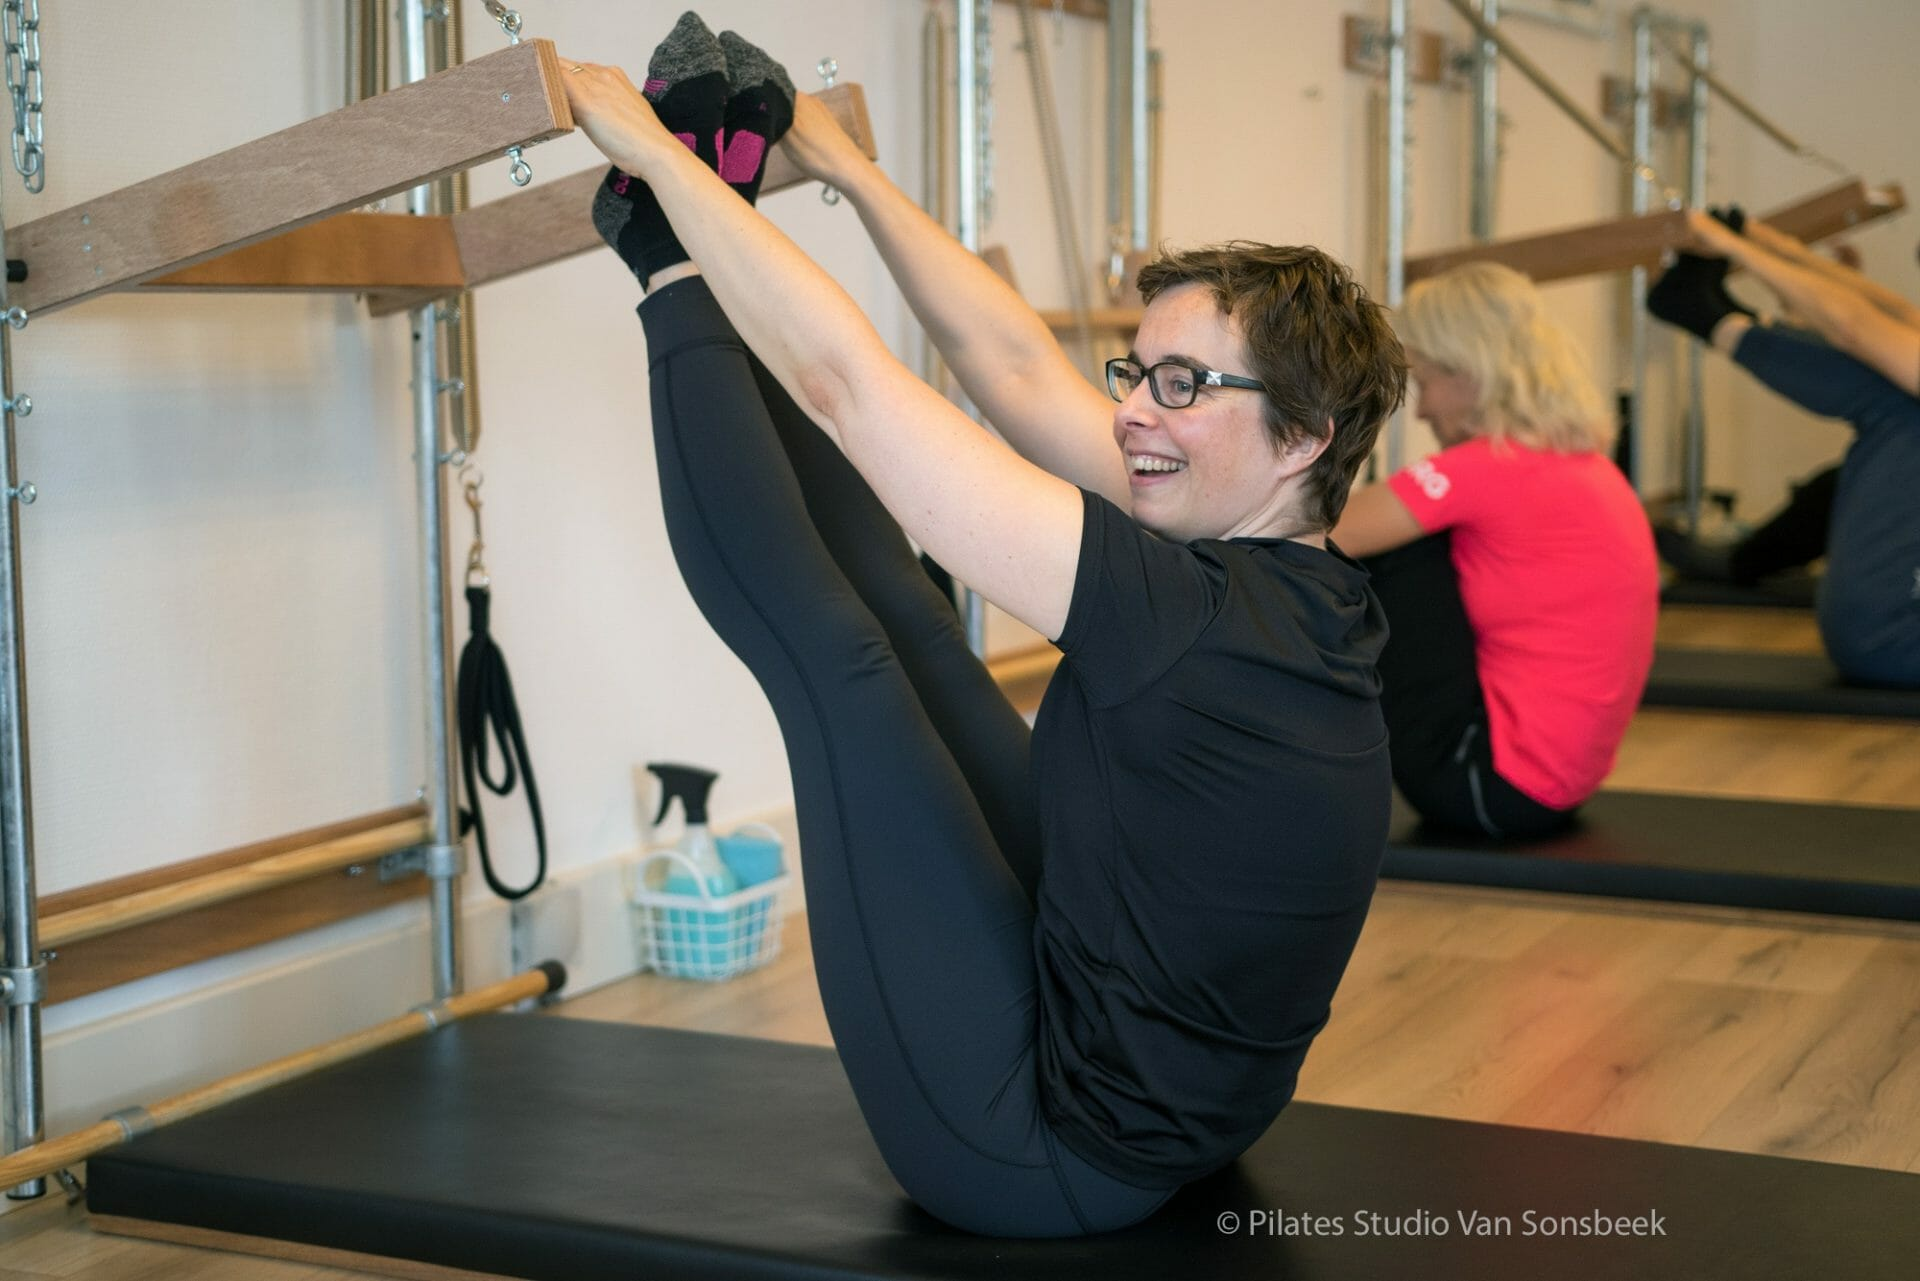 Pilates plezier! Wall Tower bij Pilates Studio van Sonsbeekar